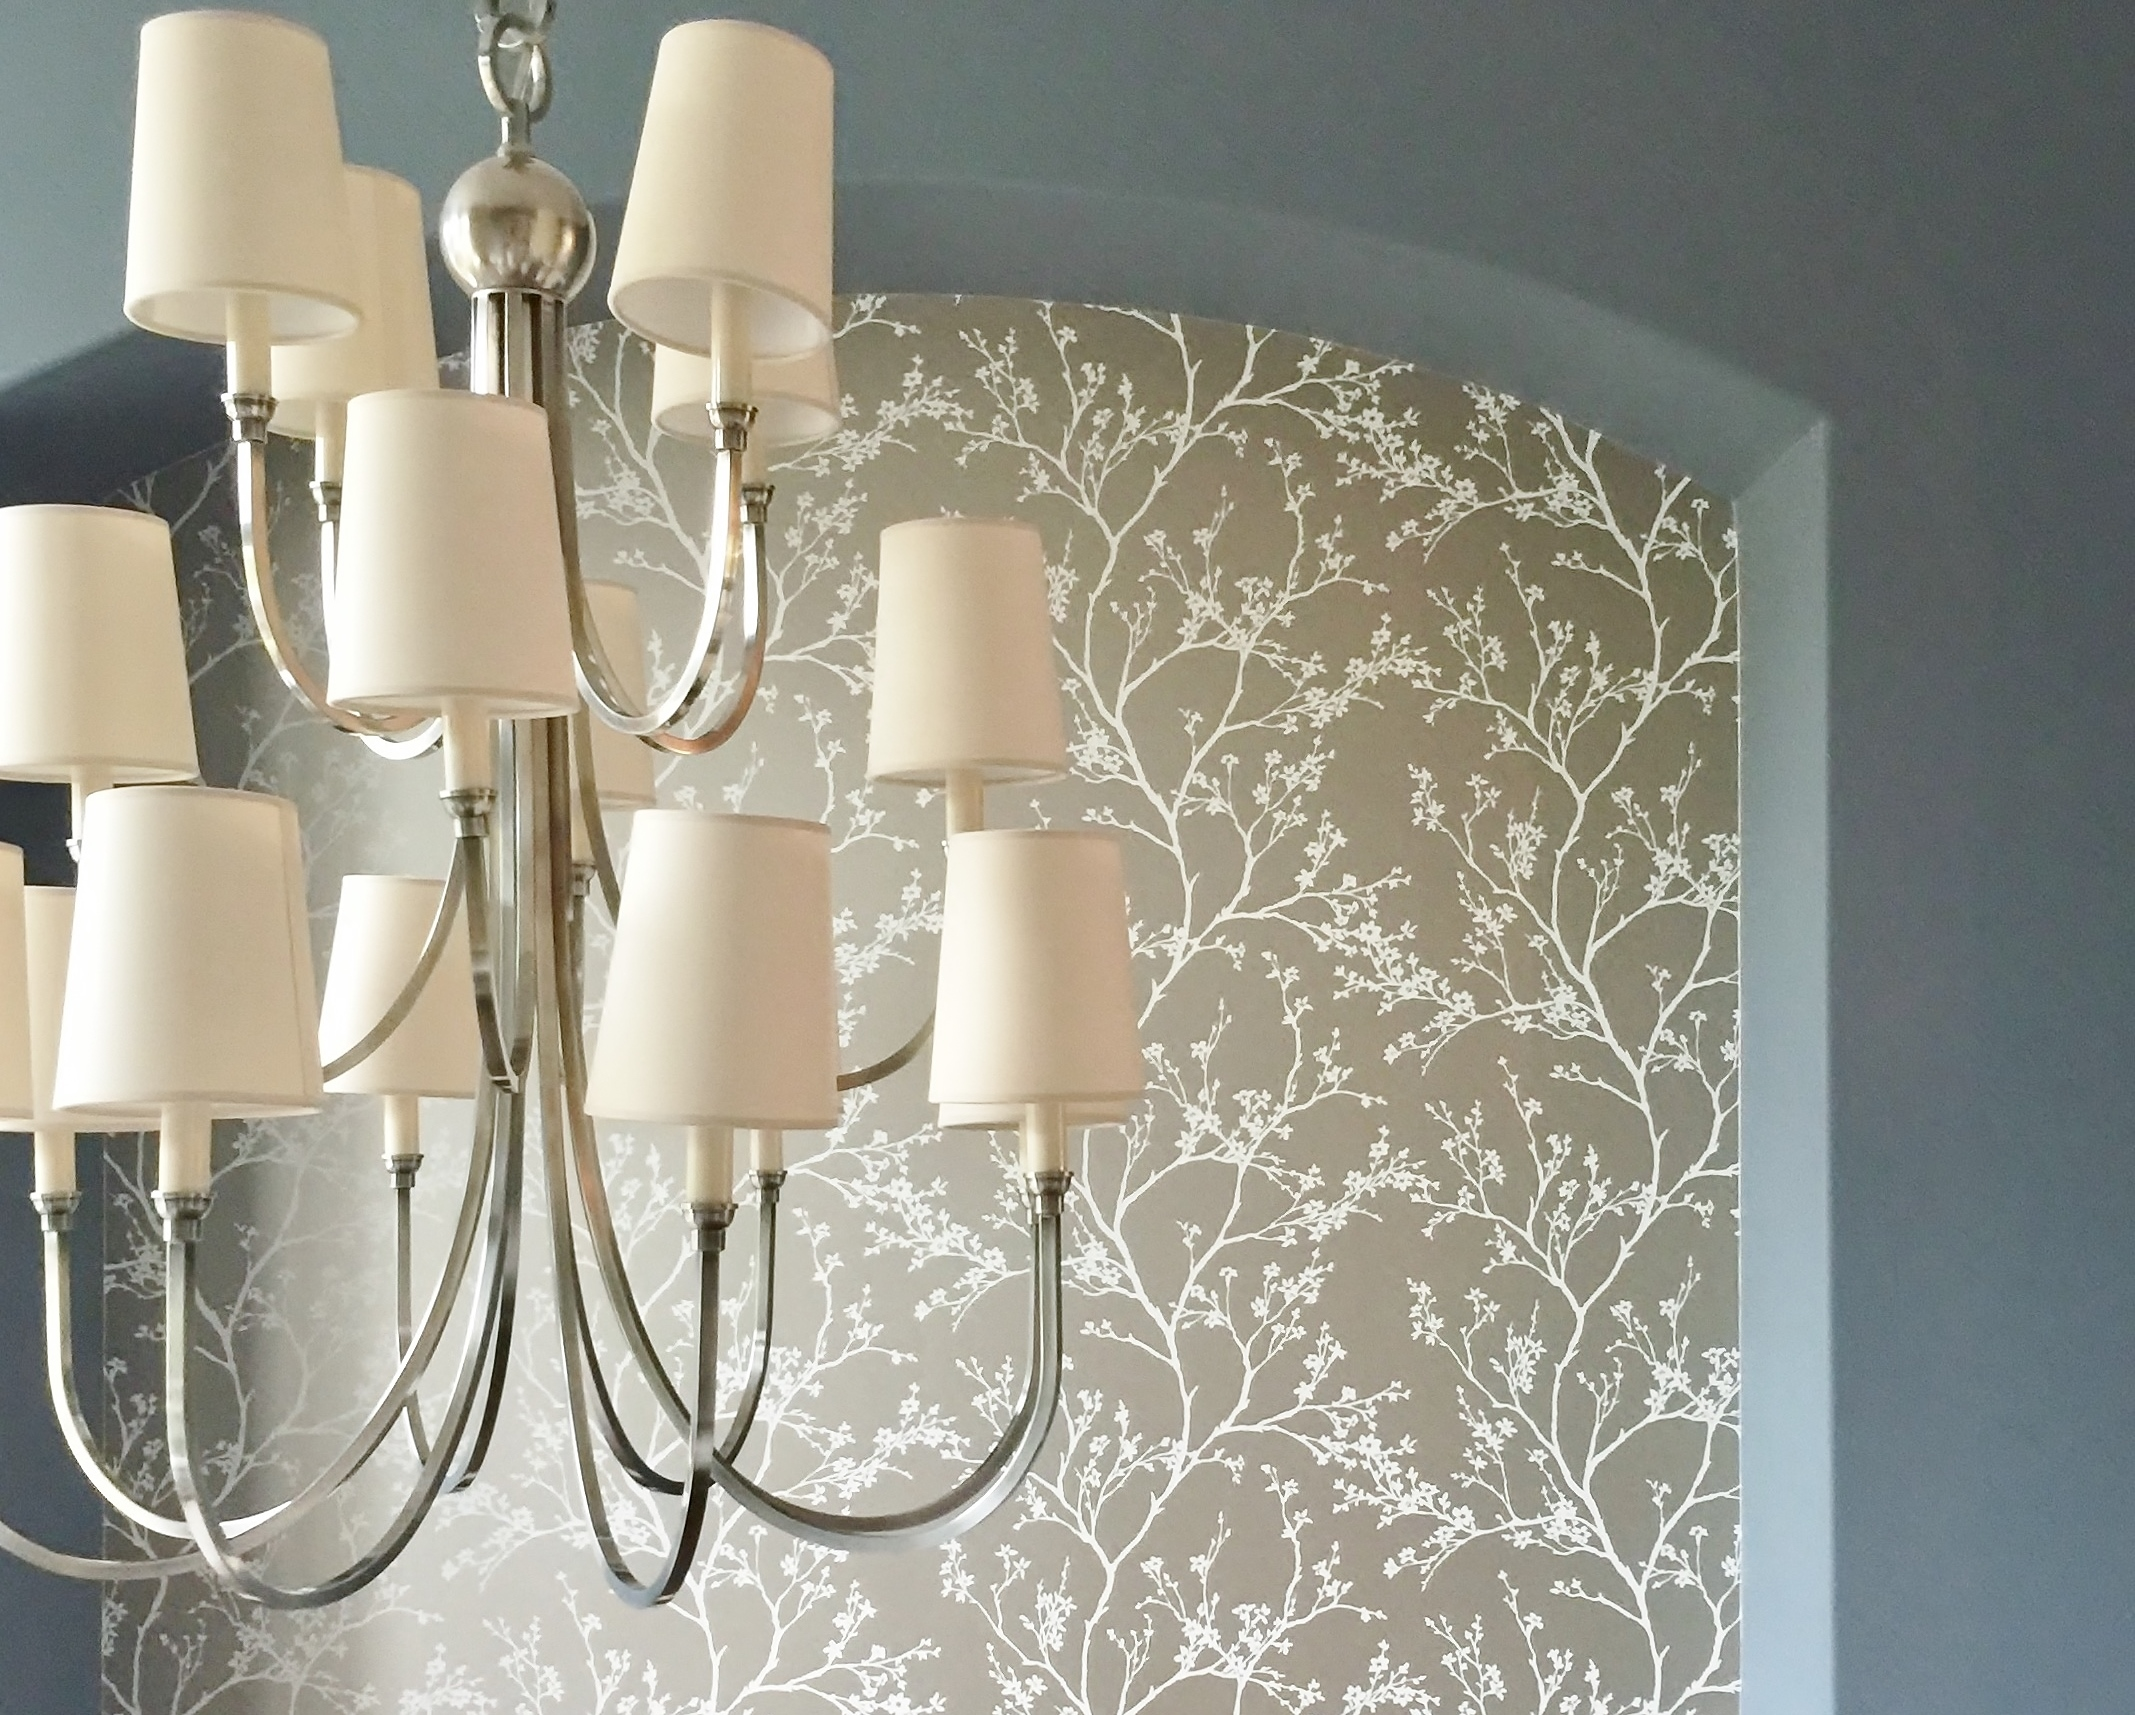 IN PROGRESS - polished nickel chandelier with gold wallpaper beyond